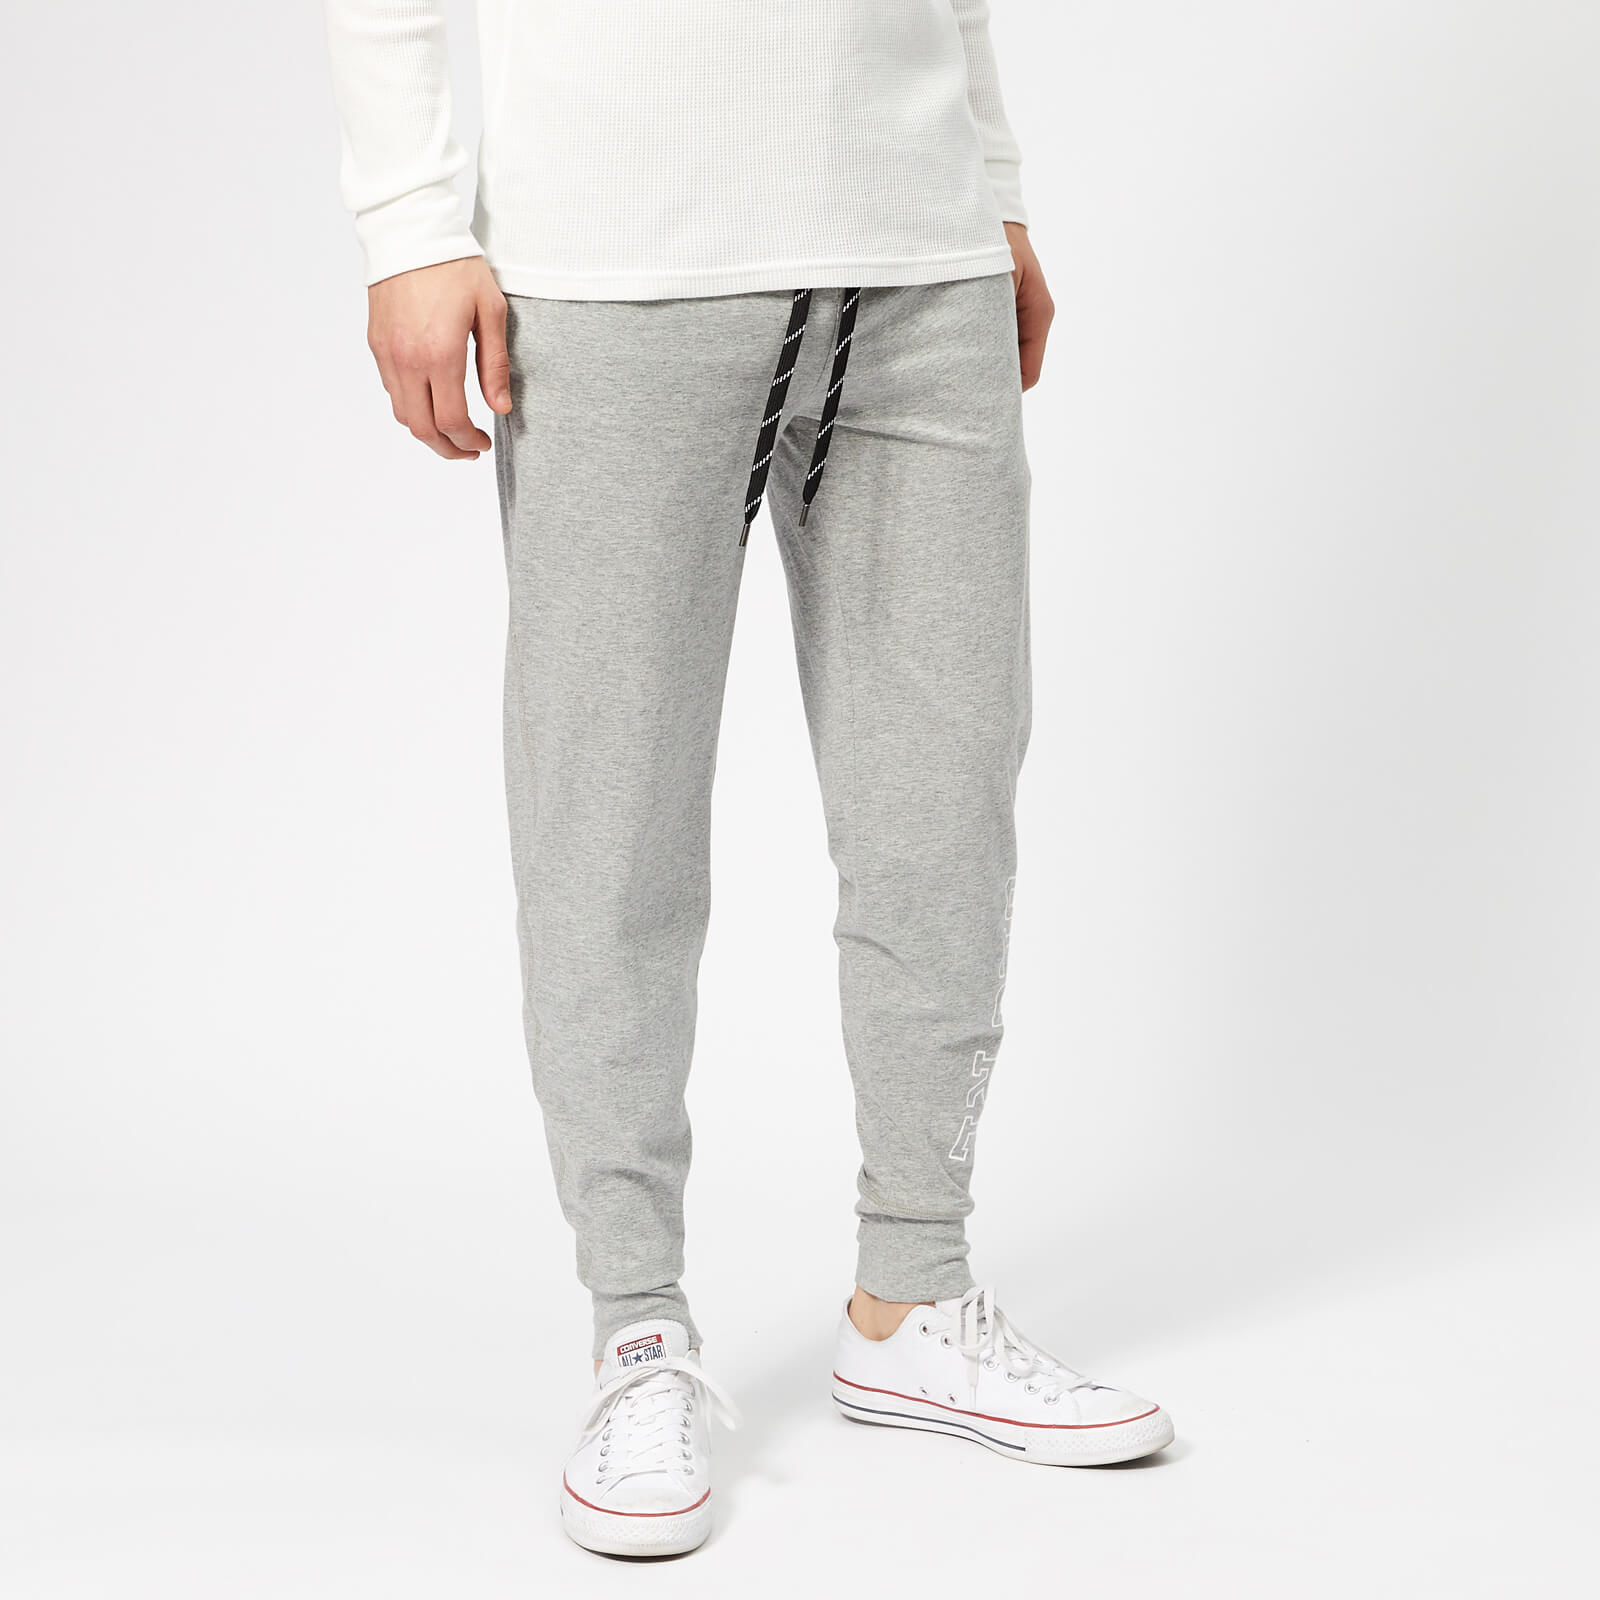 34a9a07bb12 Polo Ralph Lauren Men s Cotton Joggers - Andover Heather - Free UK Delivery  over £50